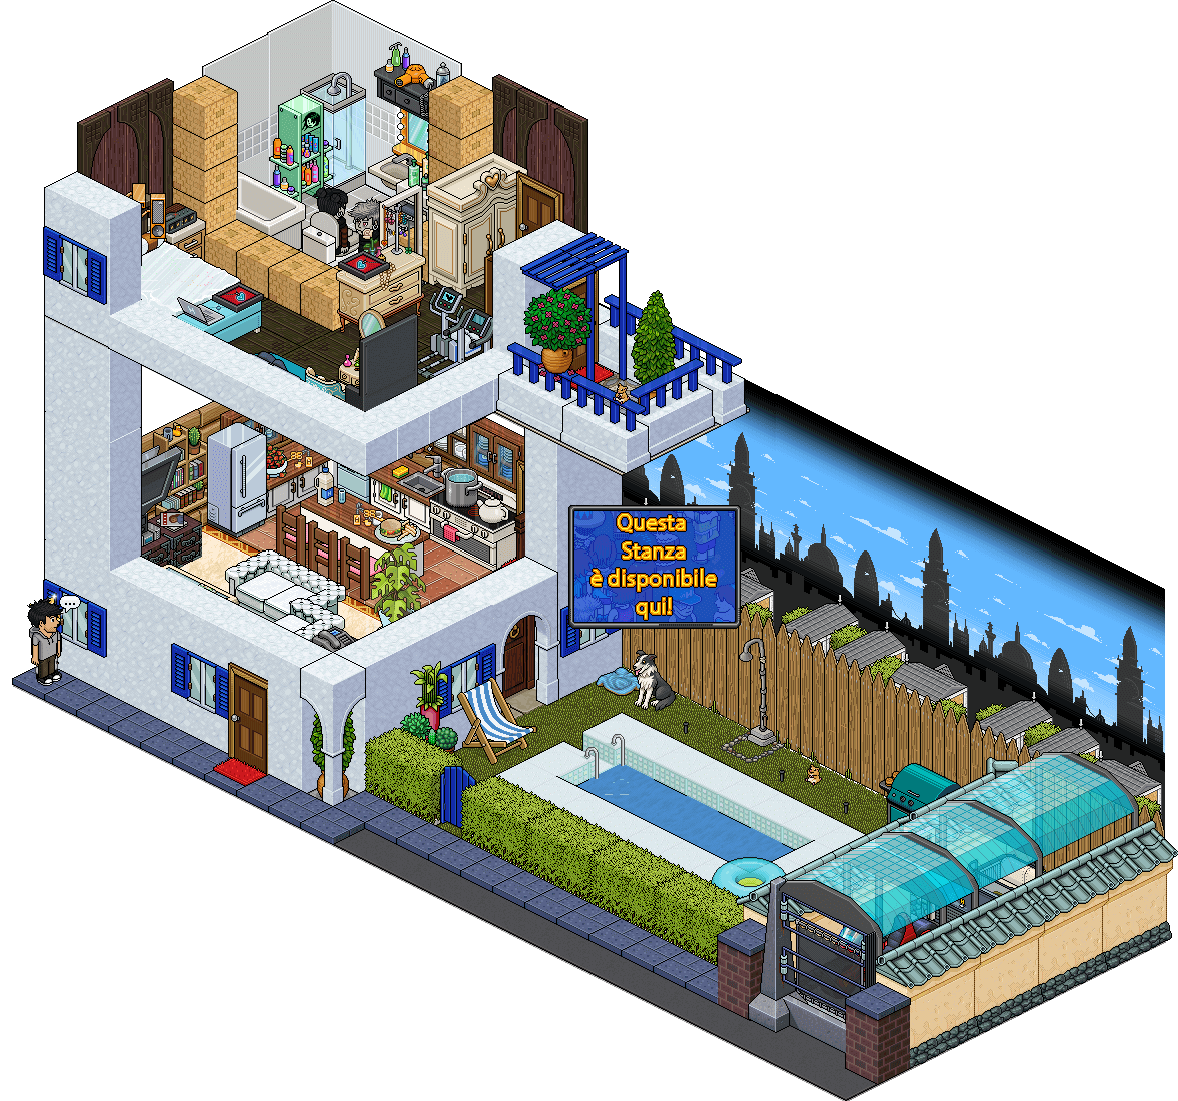 [ALL] Affare stanza Dolce Casa in catalogo su Habbo Affare18